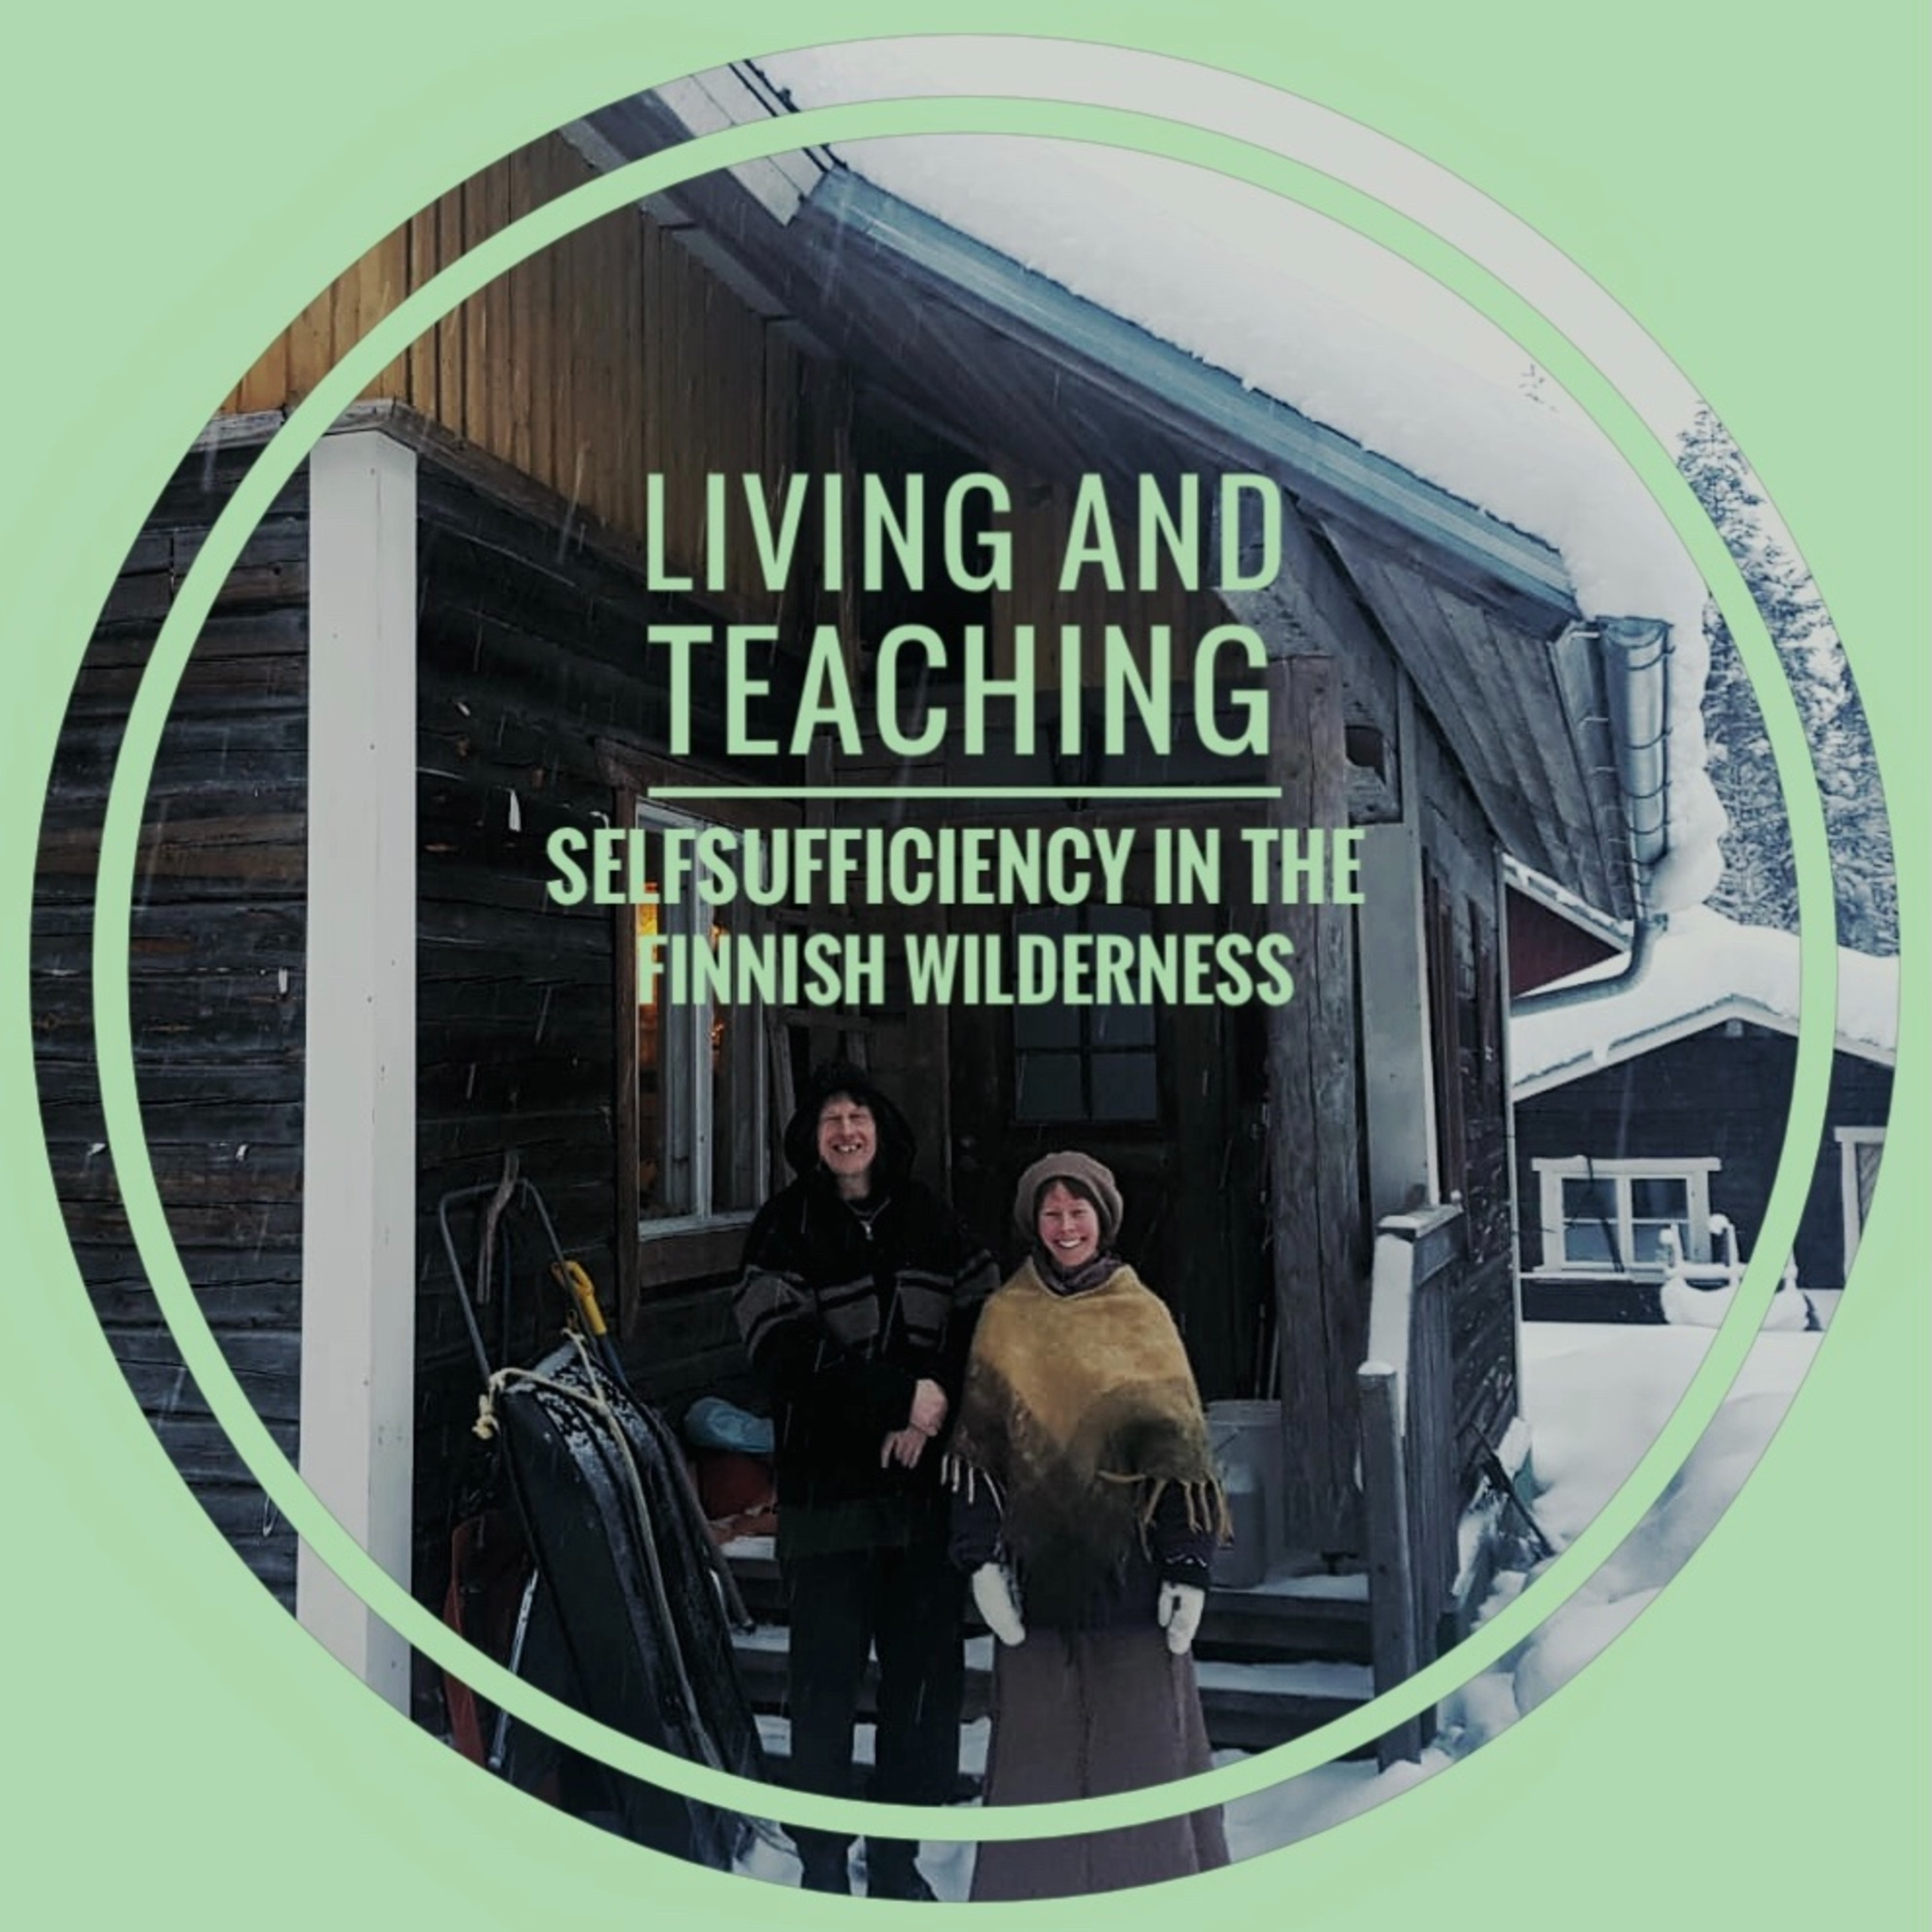 Living and teaching self-sufficiency in the Finnish wilderness!